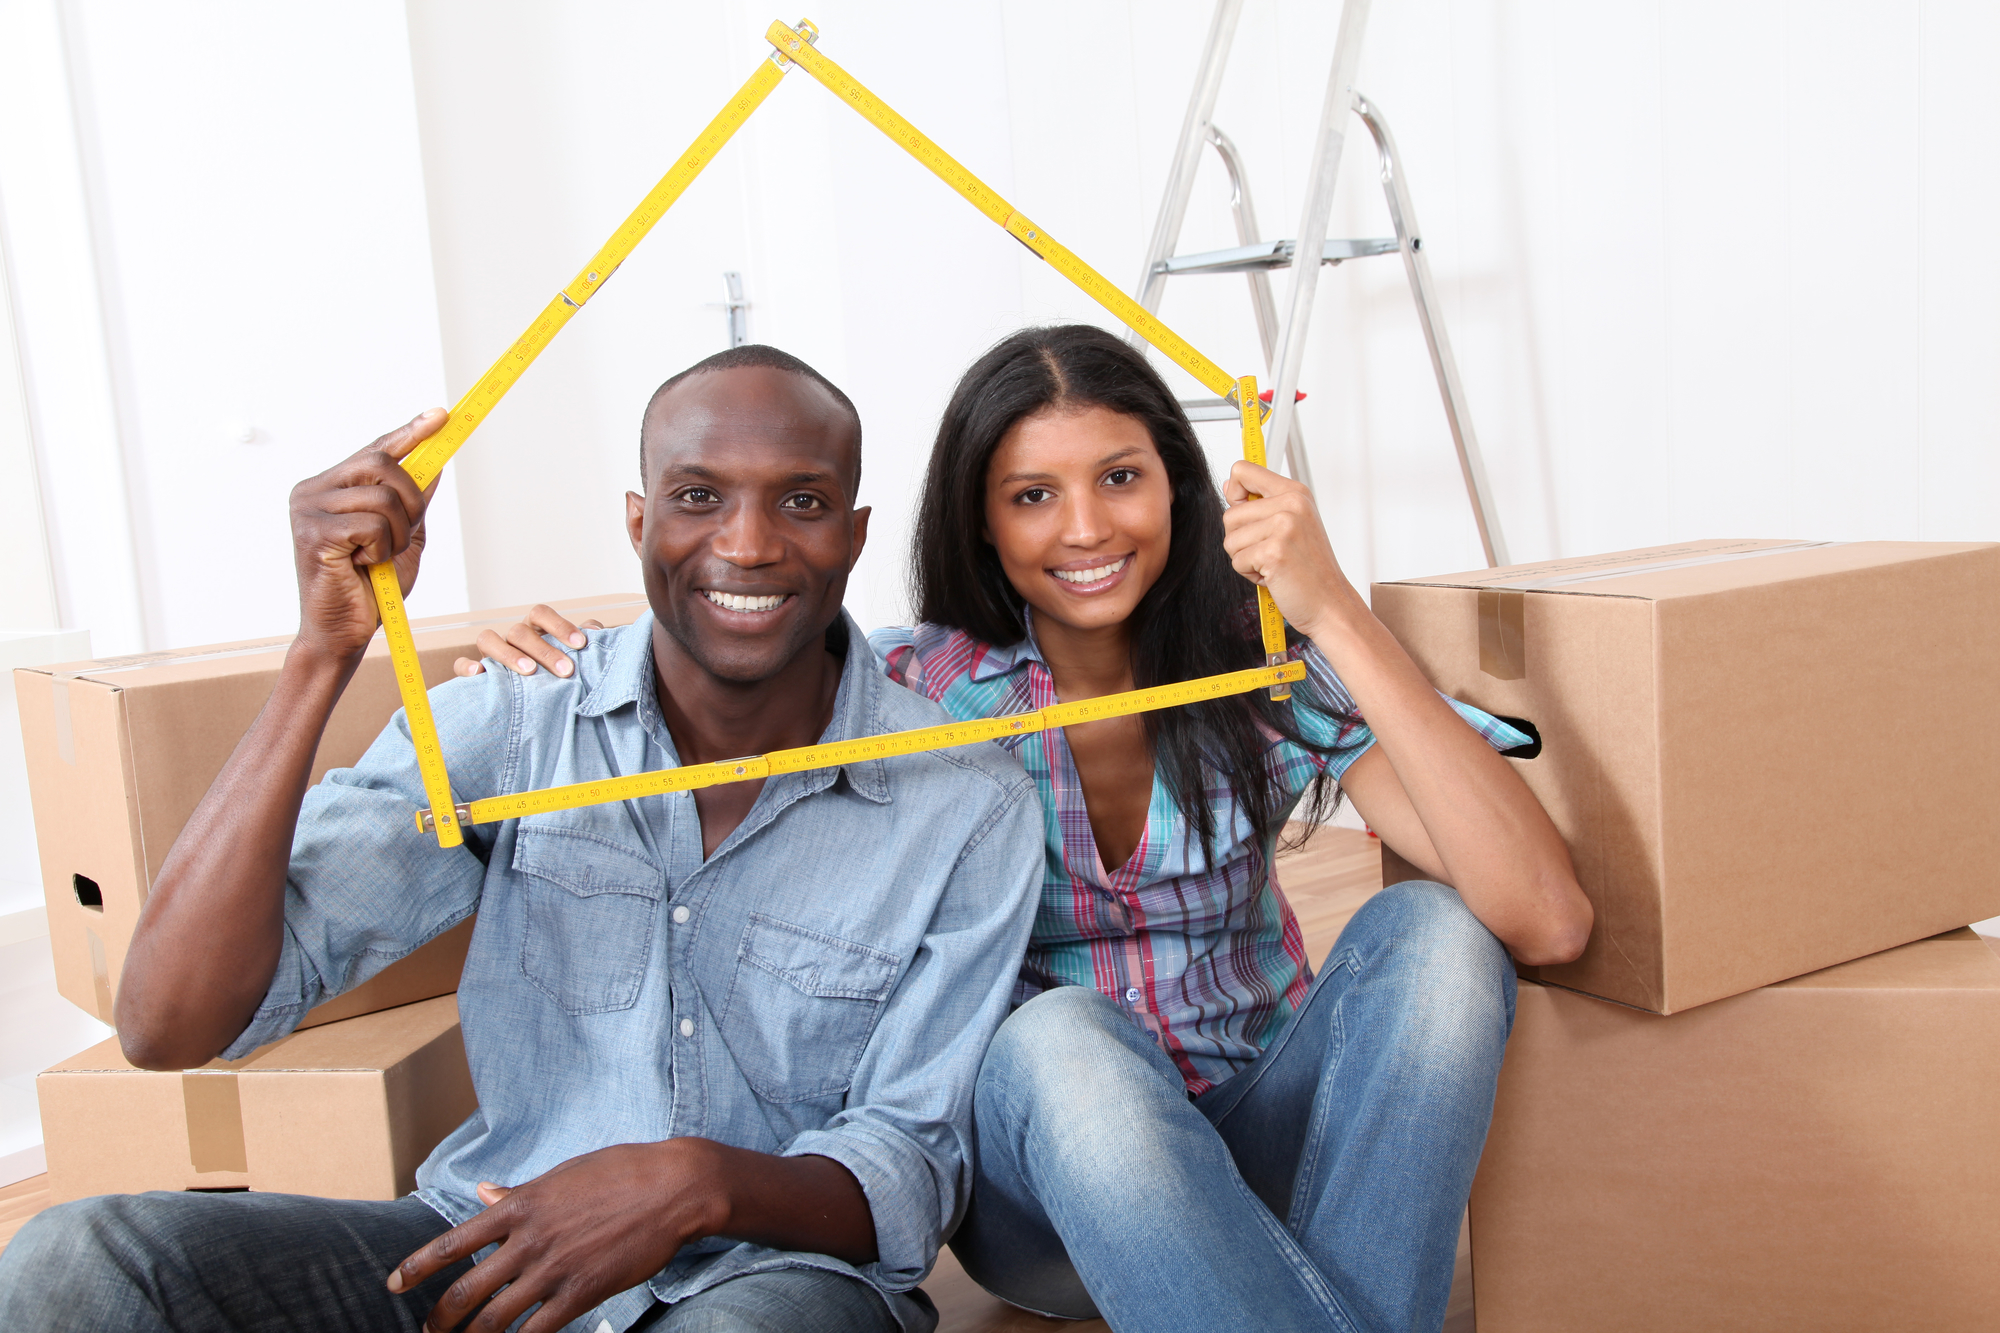 Avoid Bad Tenants! 3 Key Tips to Finding Quality Renters